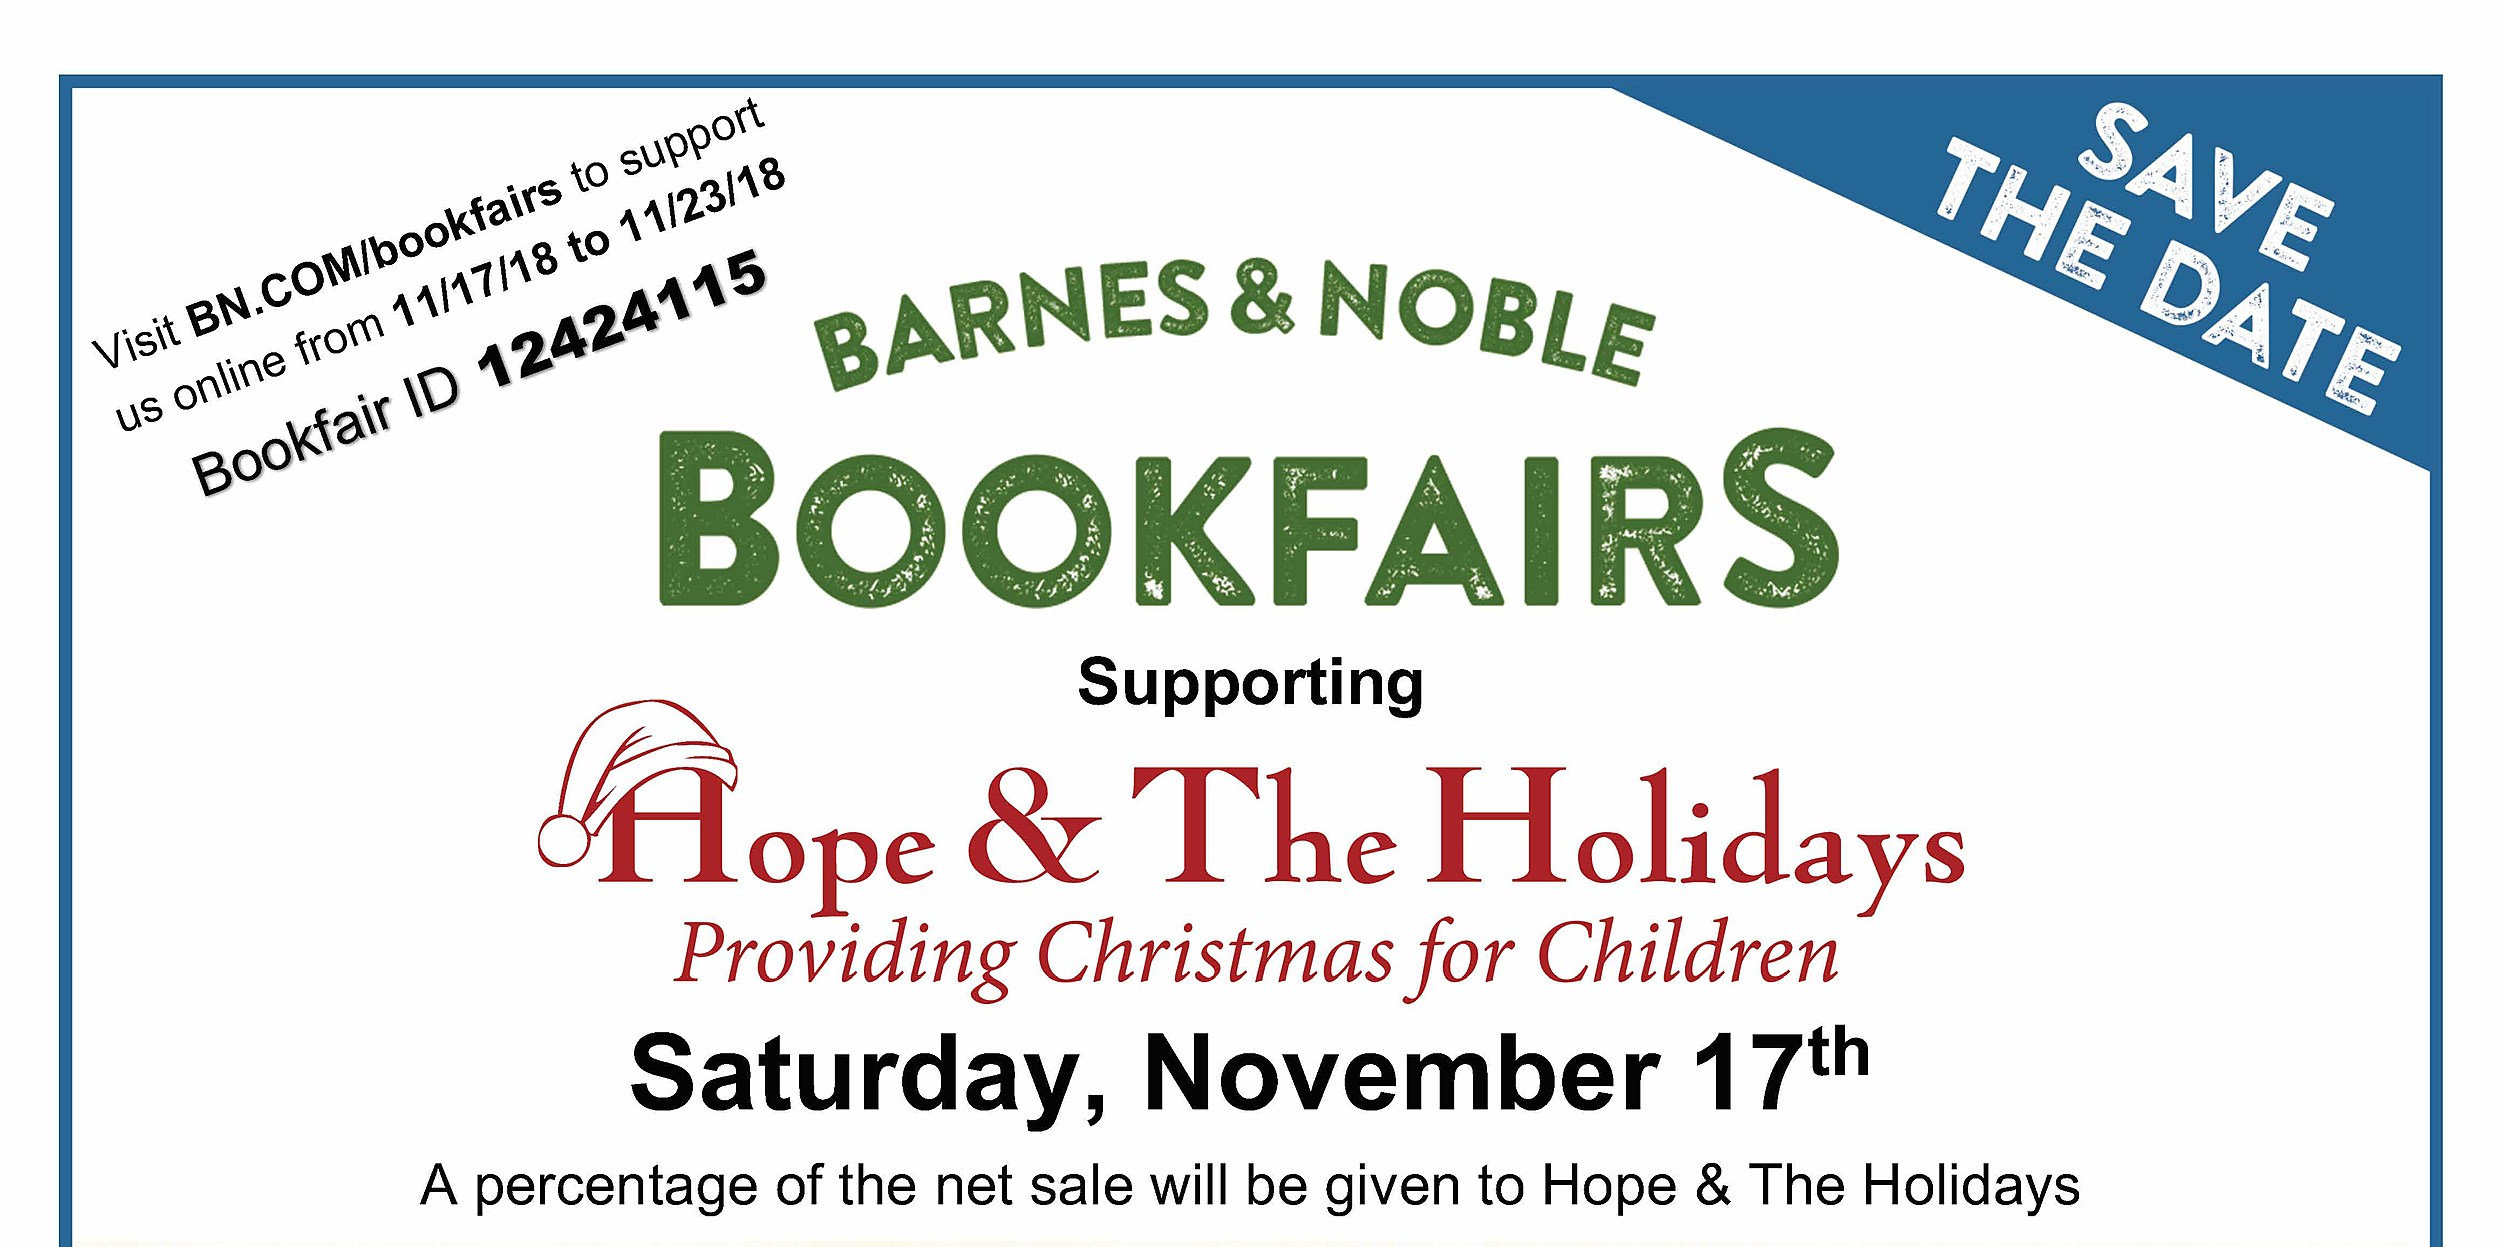 Hope & The Holidays Bookfair Day at Barnes & Noble and Toy Drive